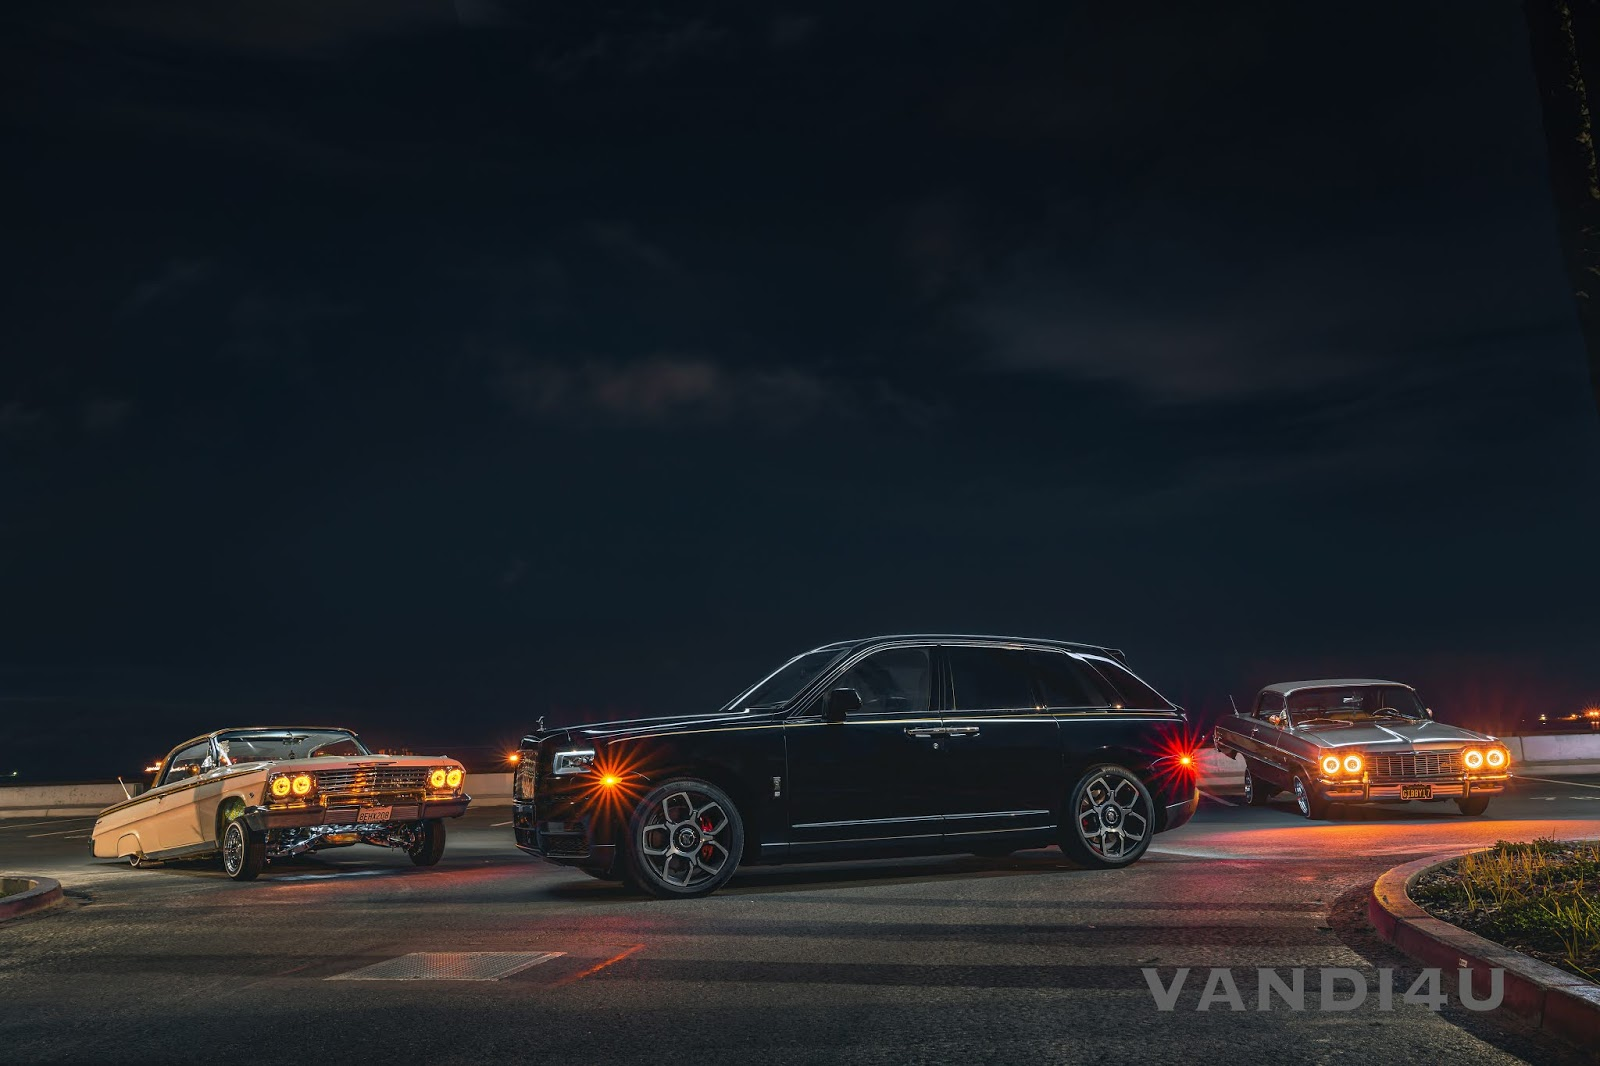 Rolls Royce plans to conduct 'King of the Night' exhibition during March 2020   VANDI4U